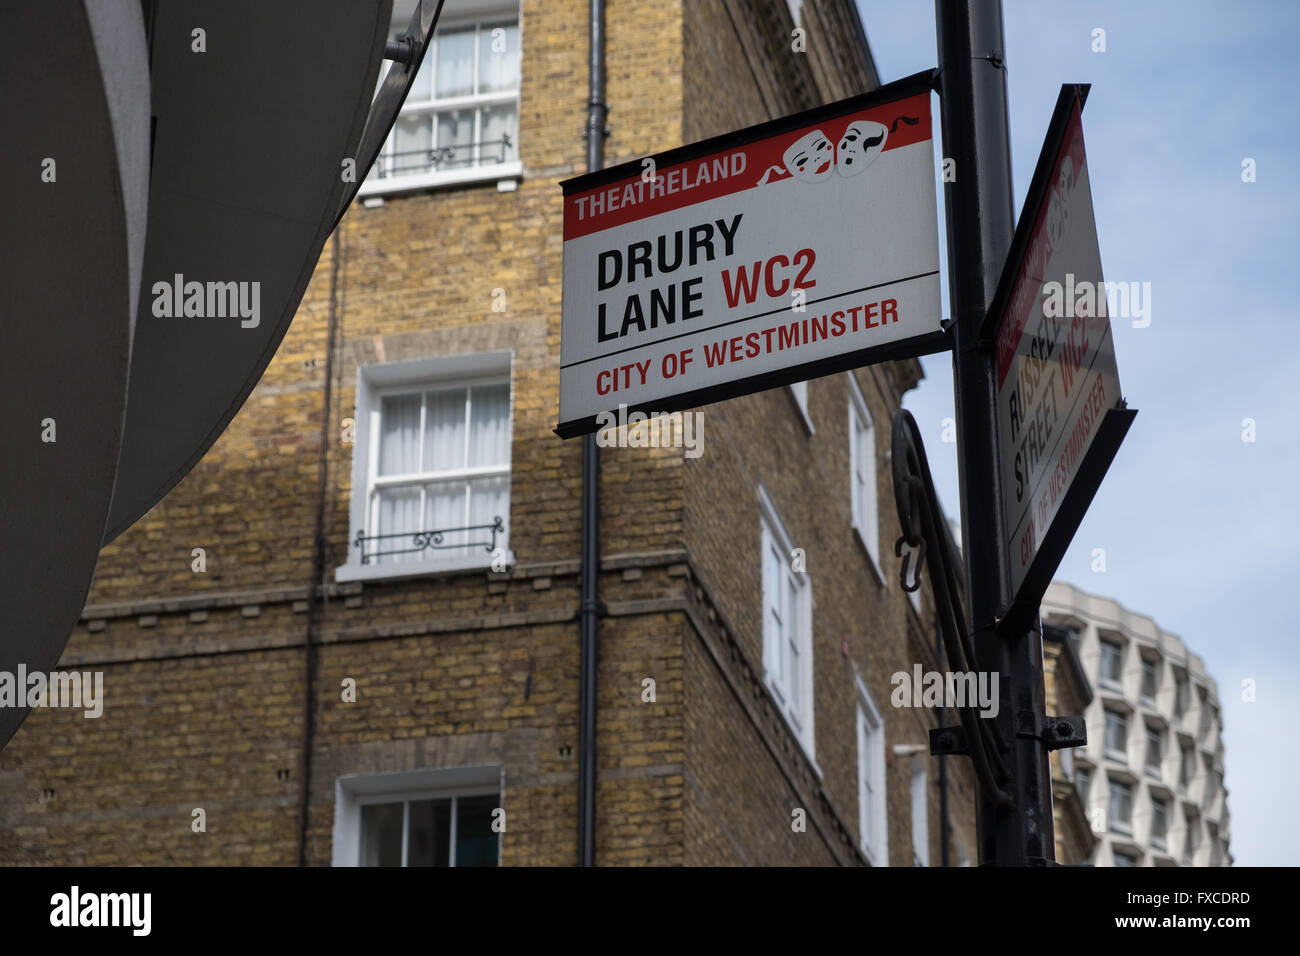 Drury Lane 'Theatreland' sign in London, England - Stock Image